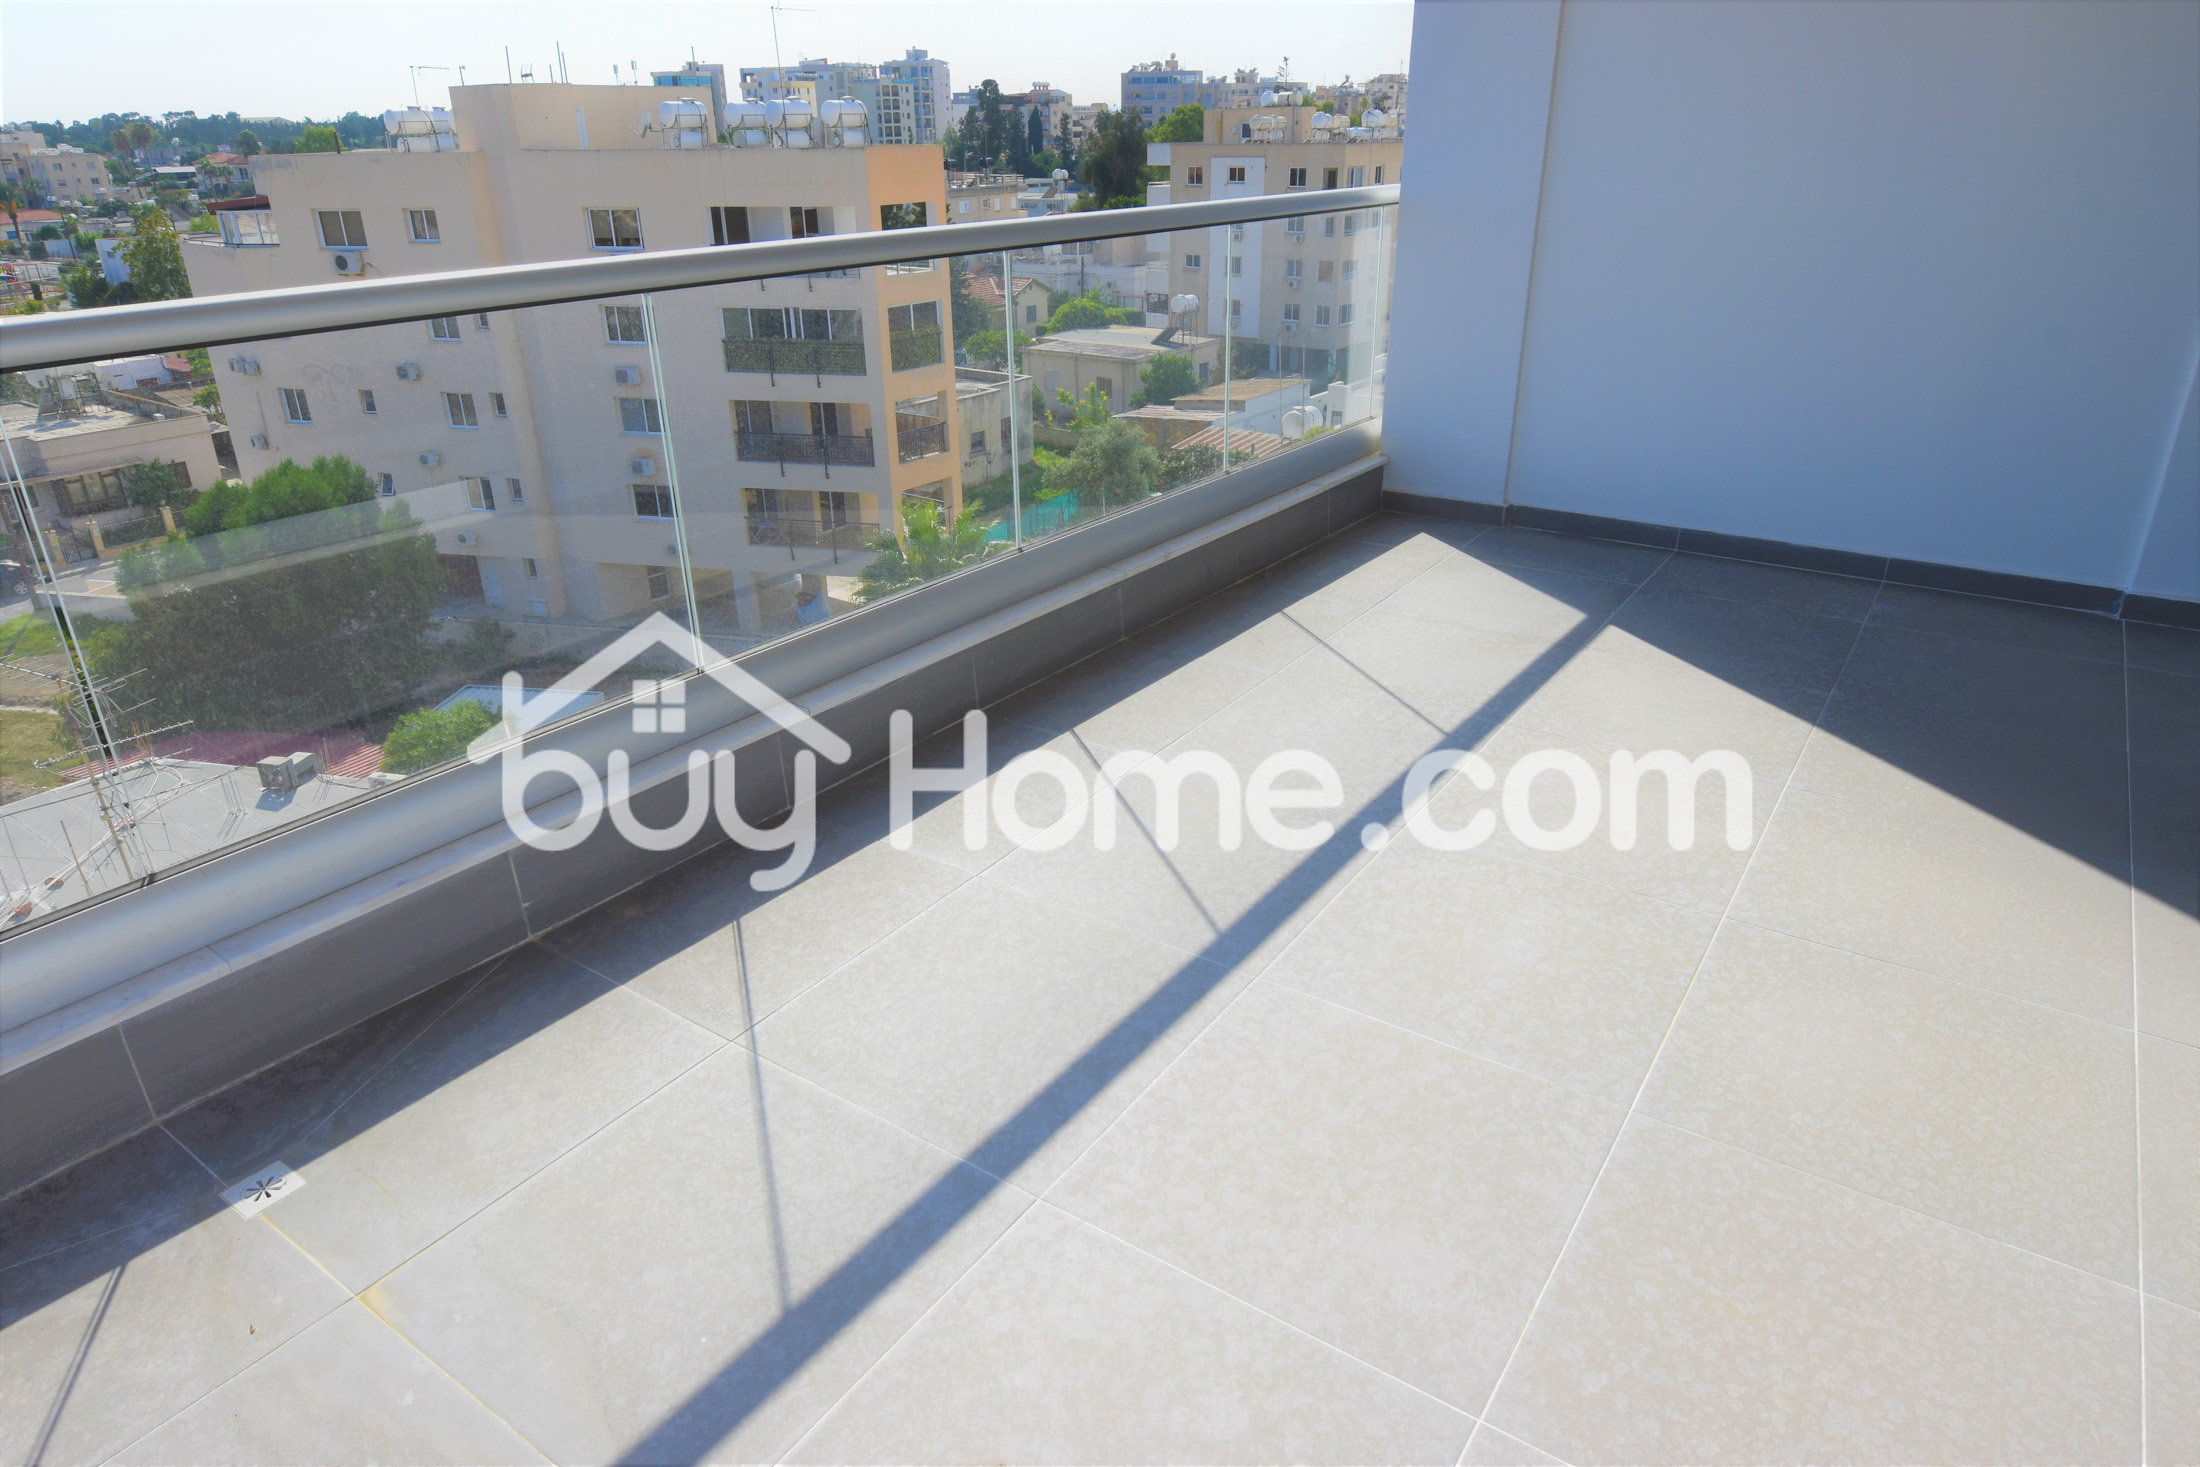 1 Bed Penthouse Apt with Roof Garden   BuyHome